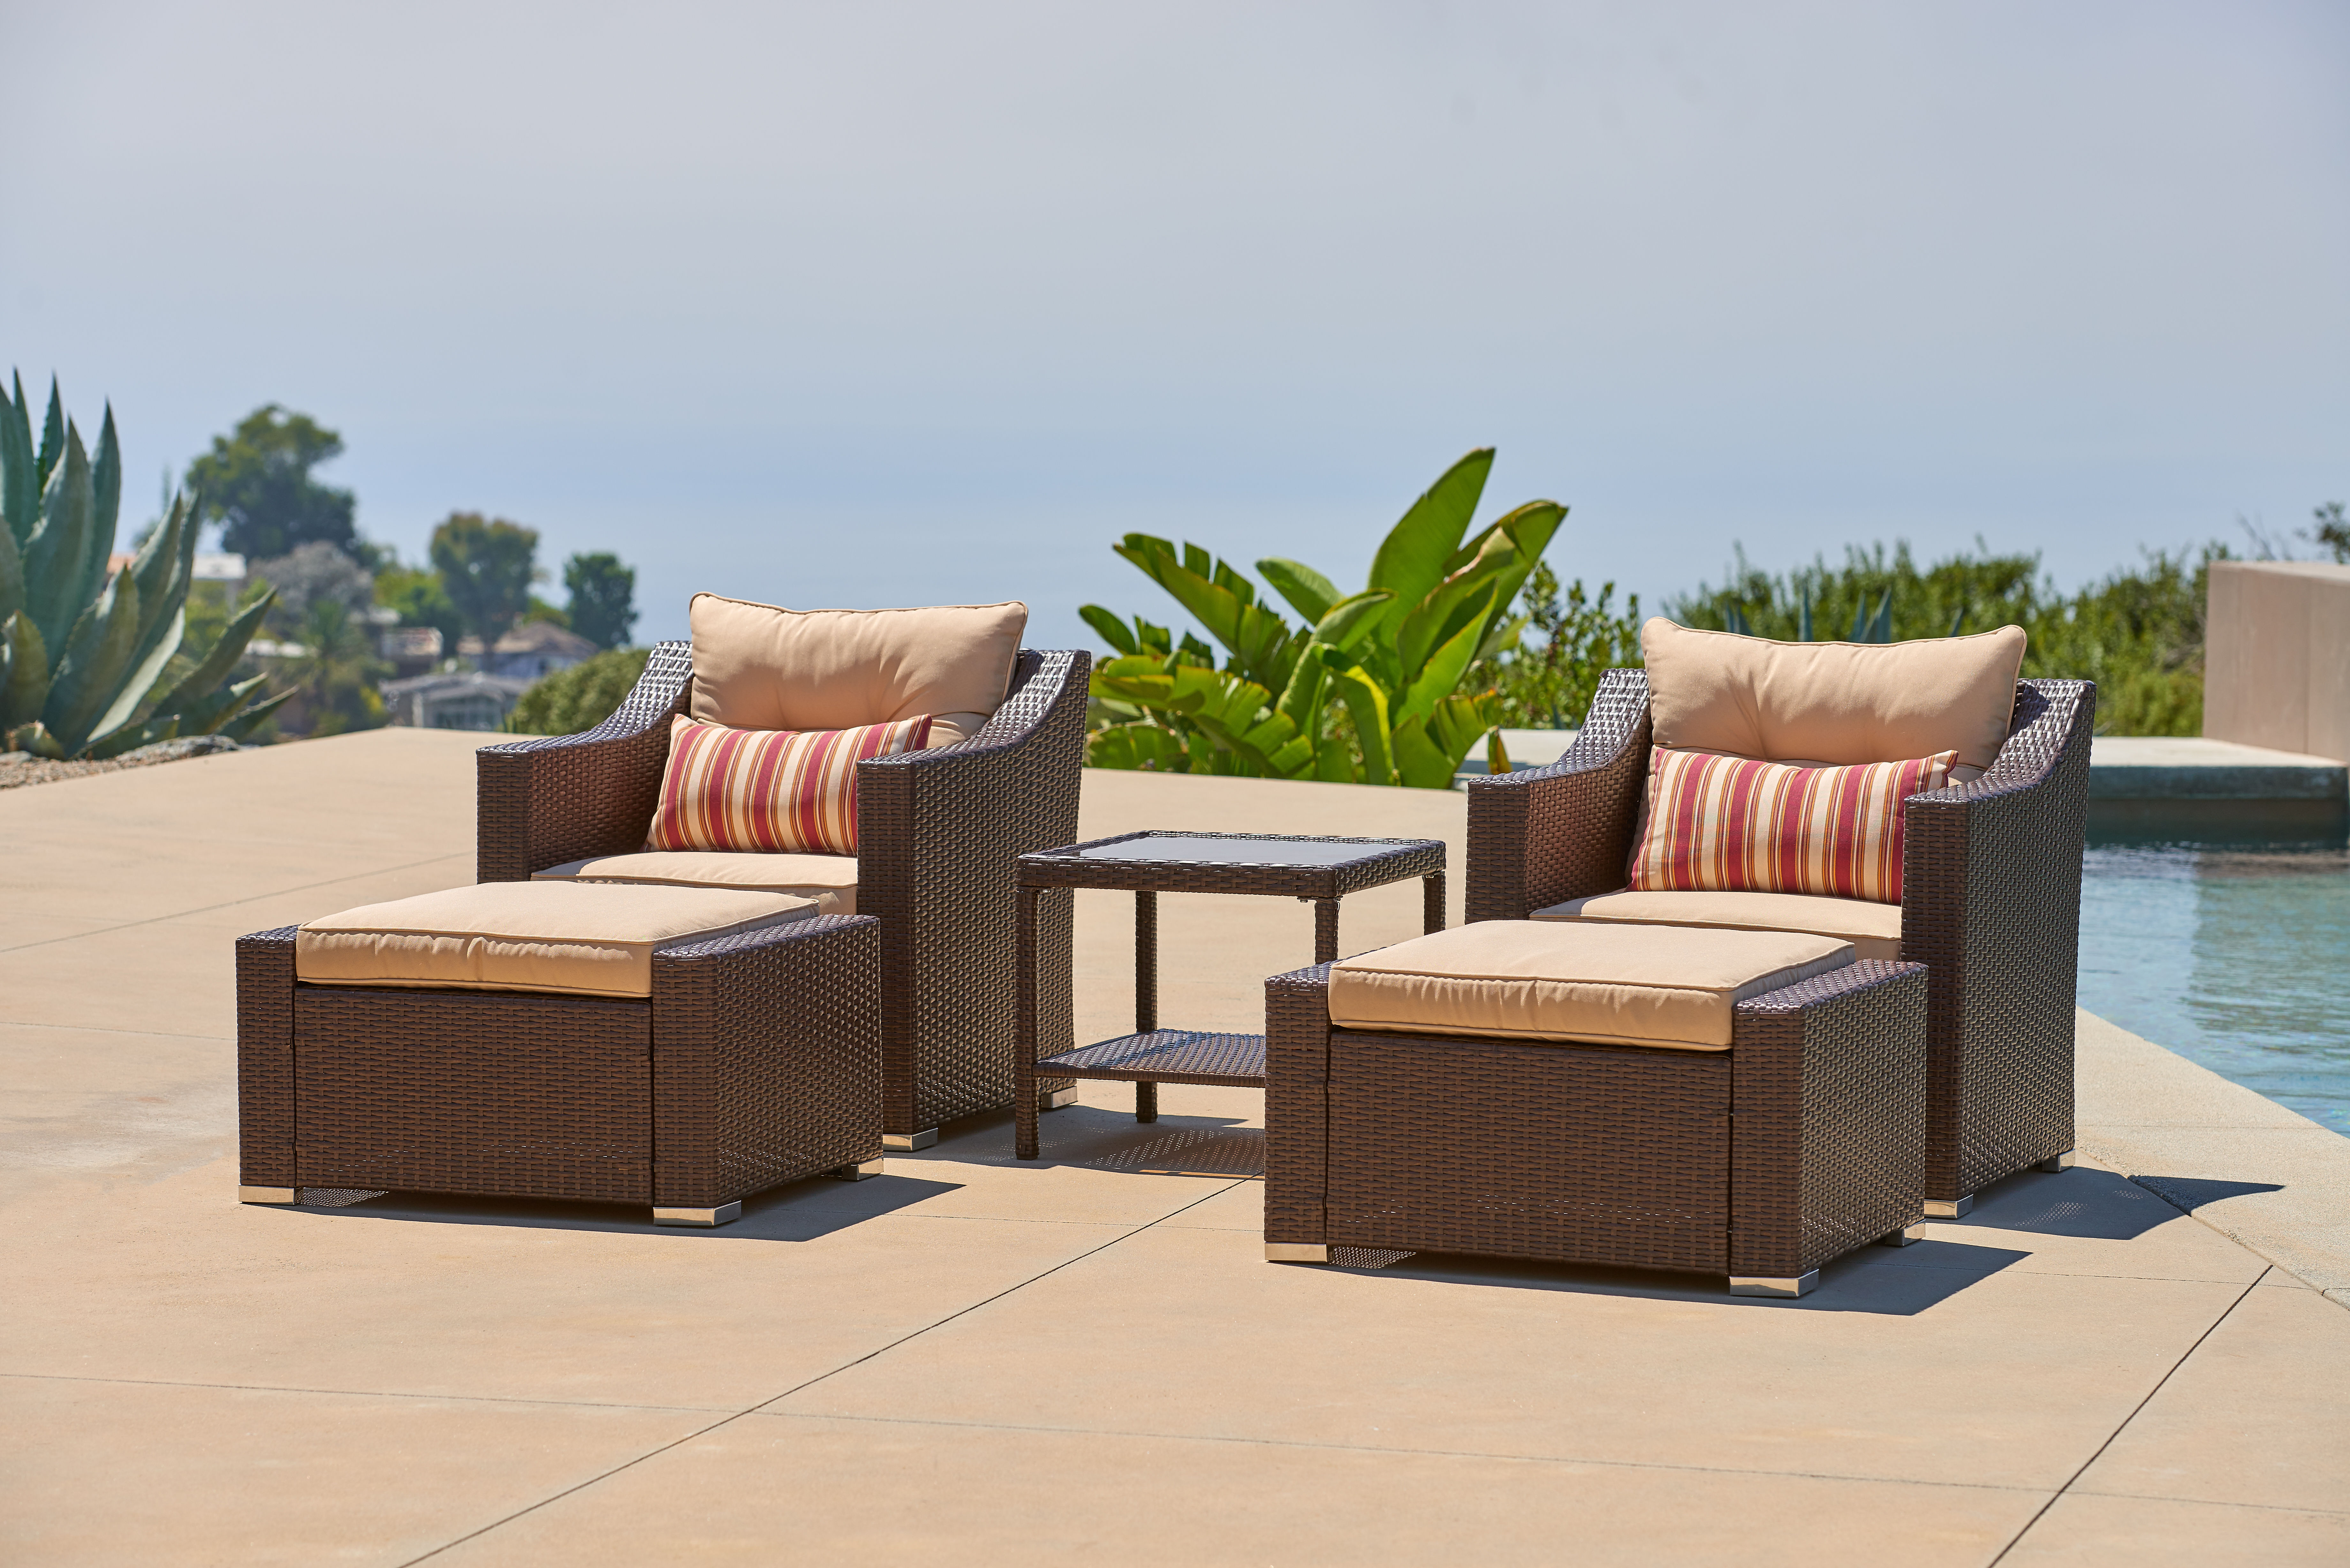 Suncrown Outdoor Wicker Chairs With Ottoman Foot Rests And Glass Top Table  (5 Piece